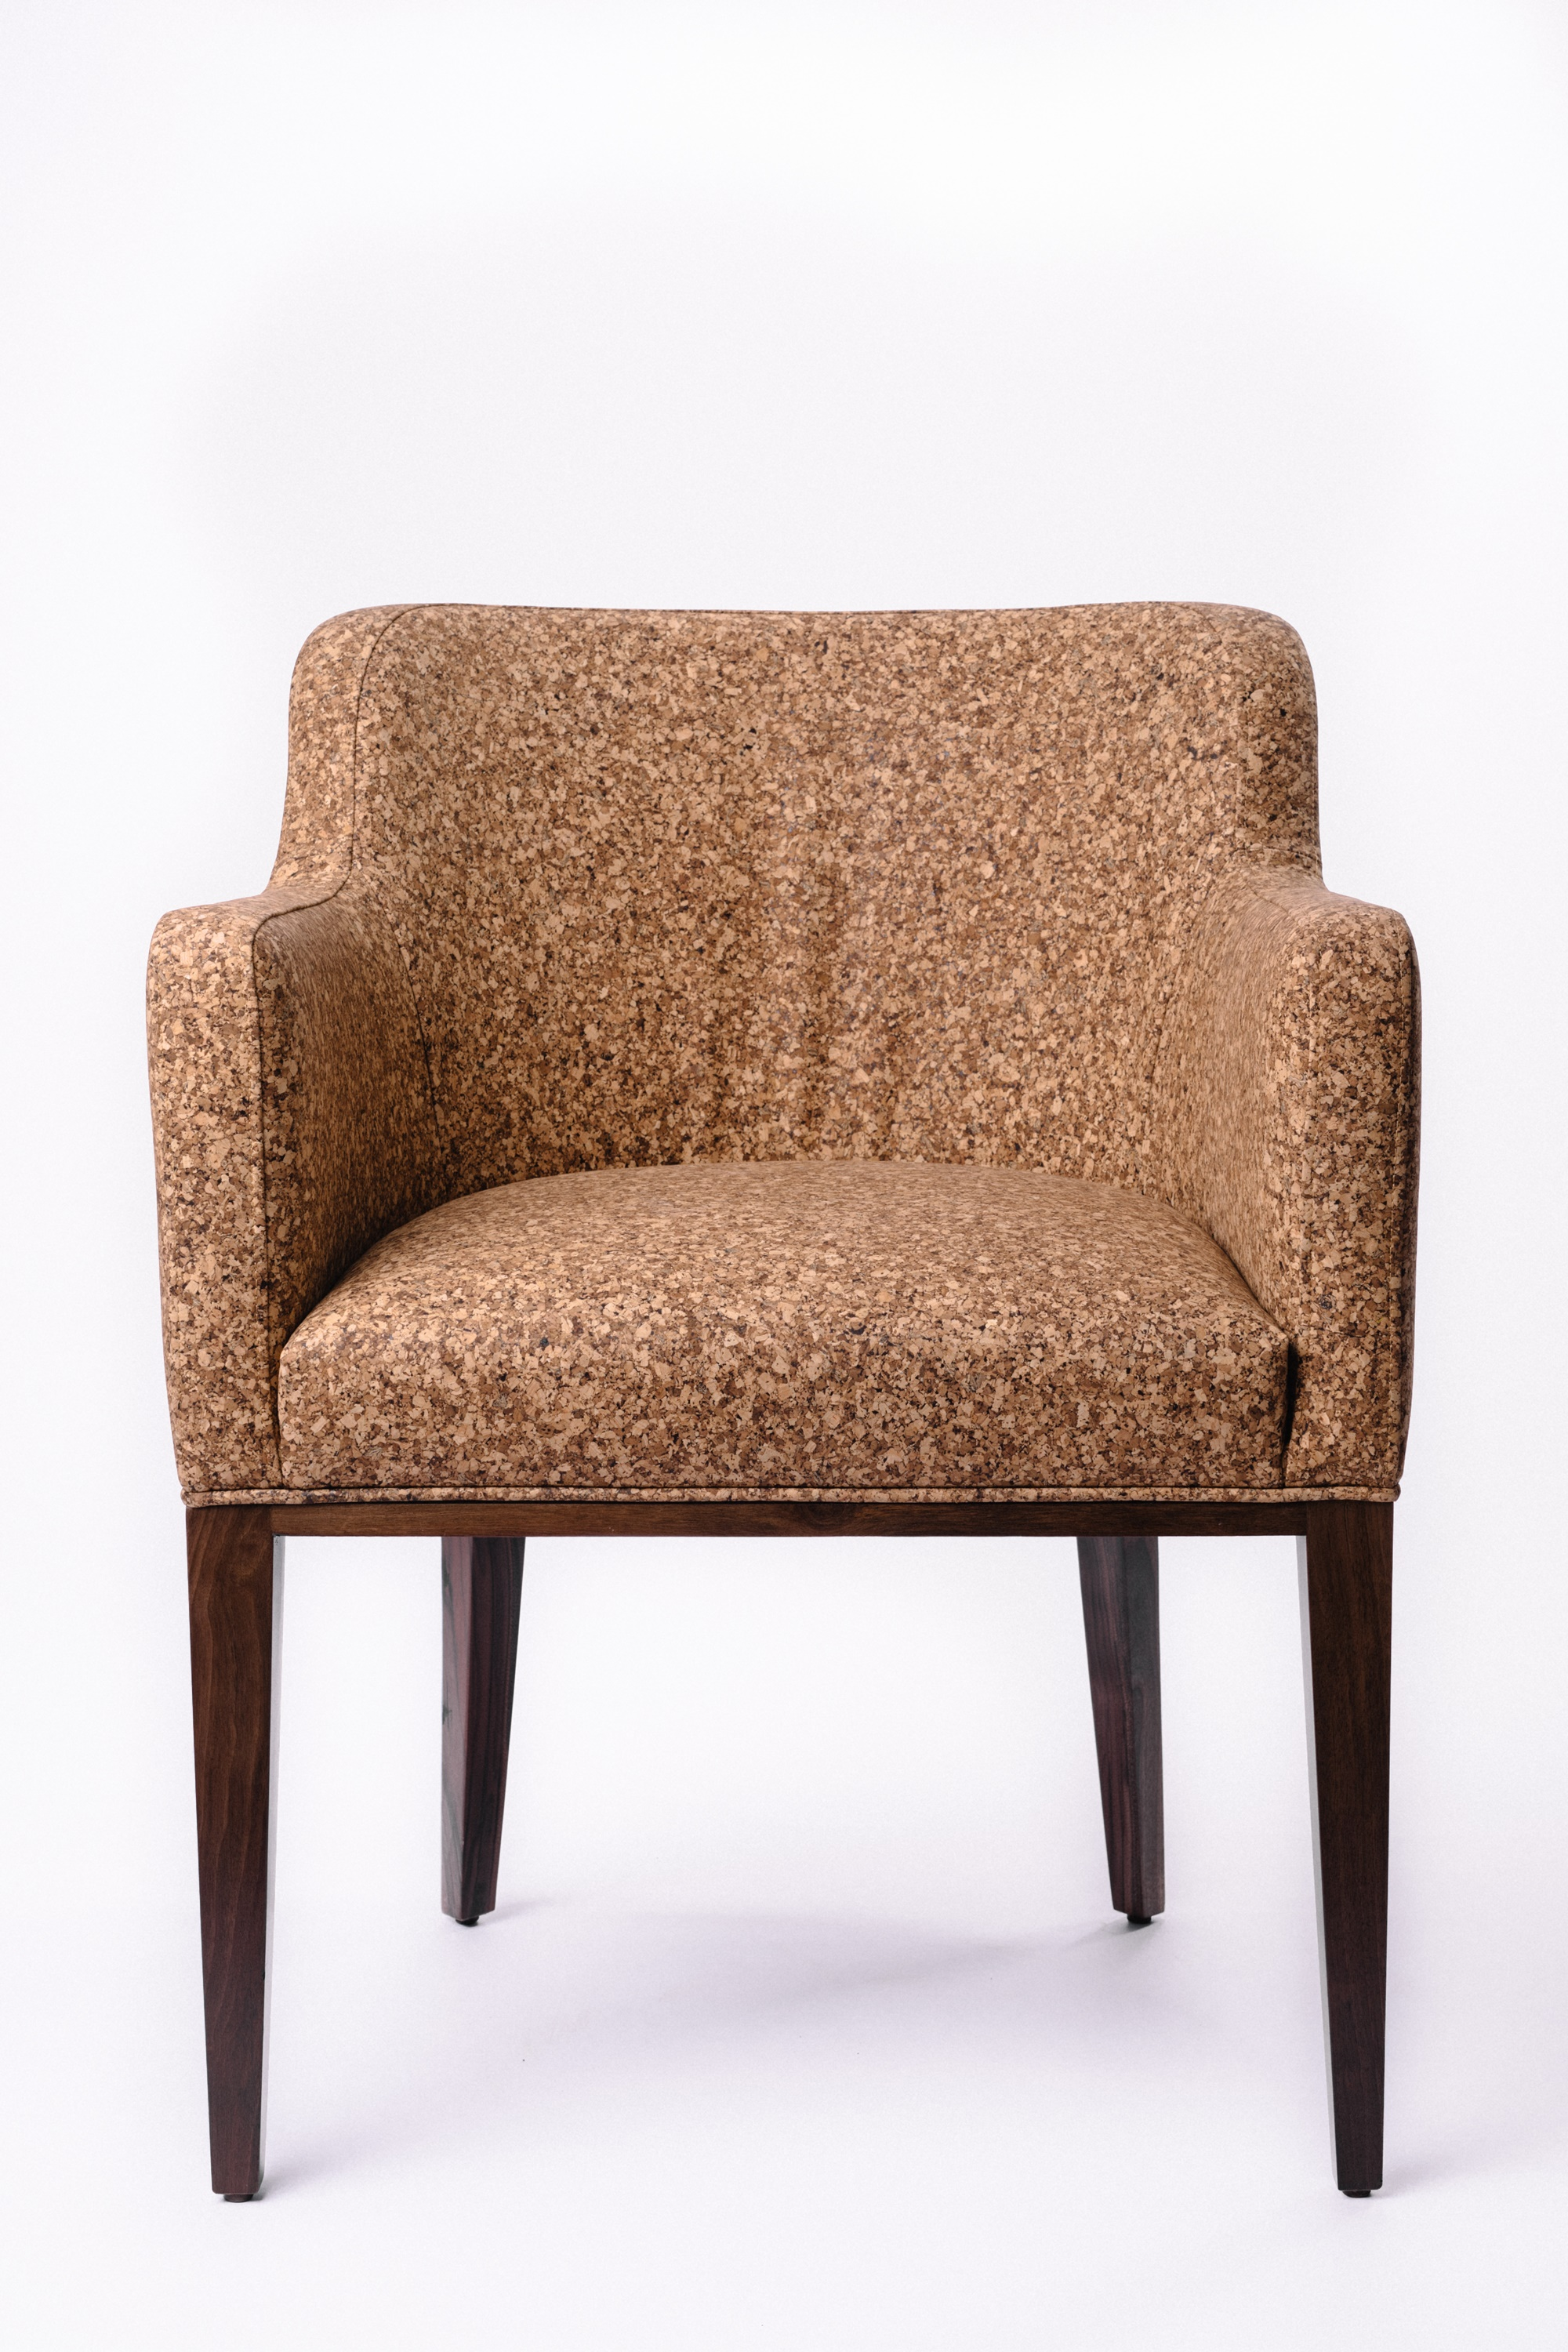 Chair Eco